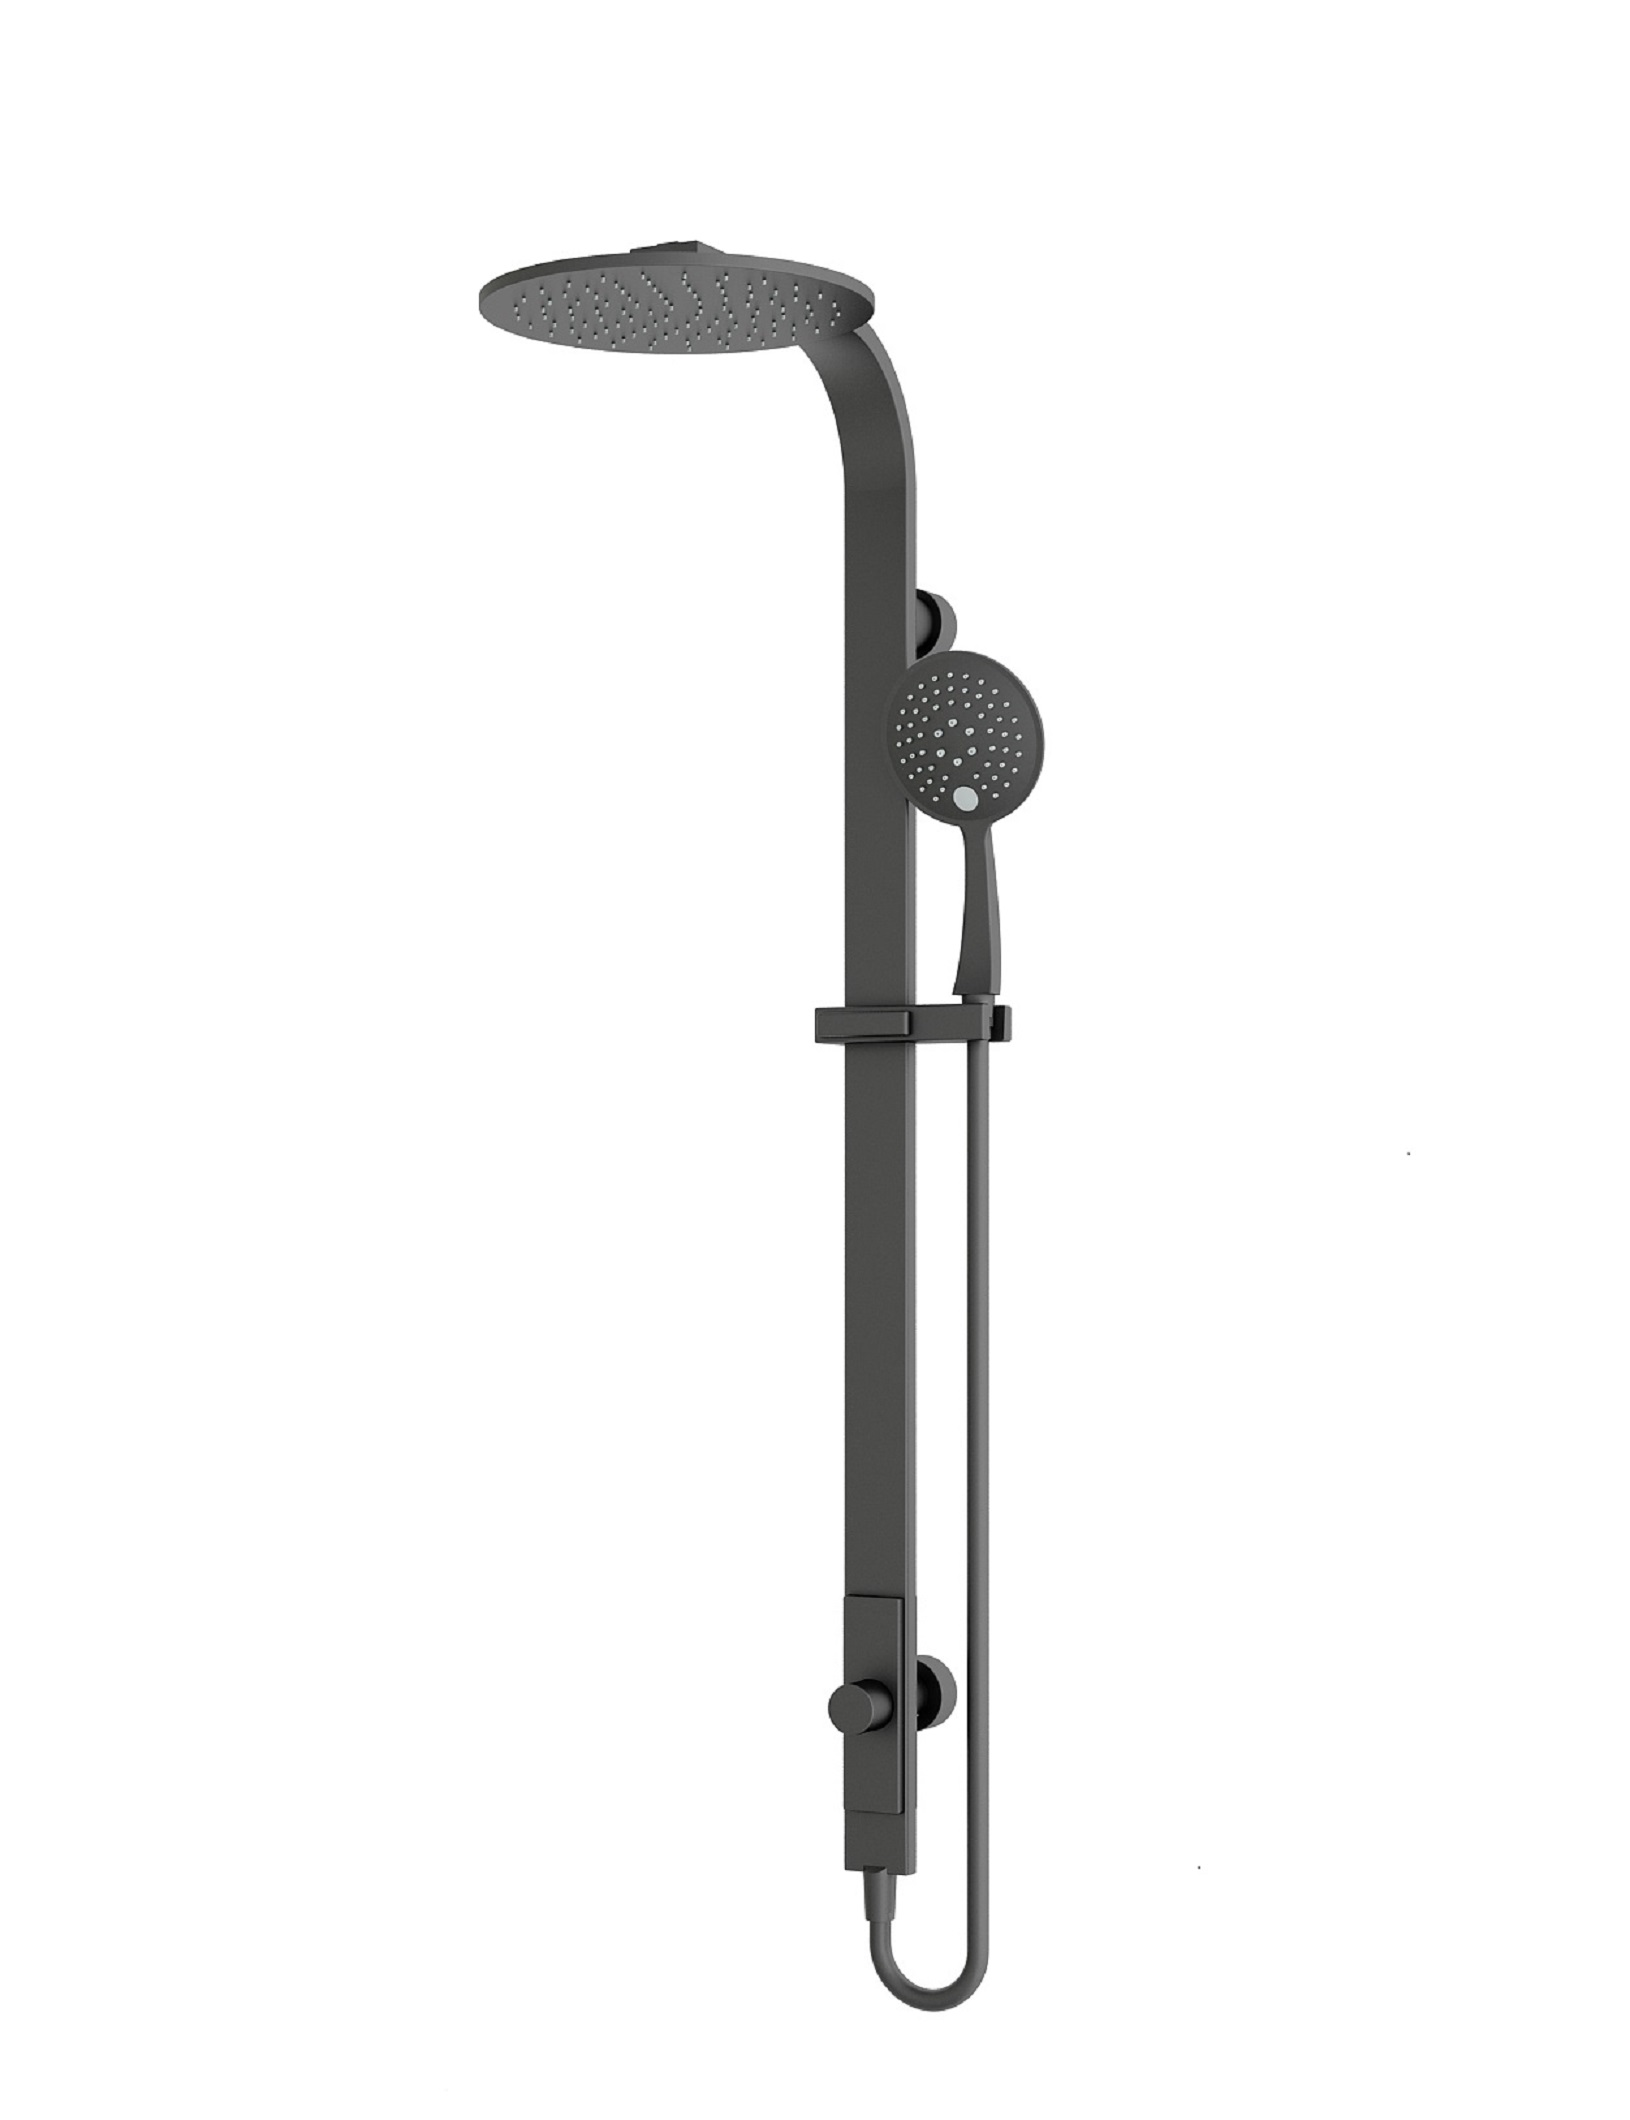 Luxury Black Round Rain Shower Set With Handheld Shower